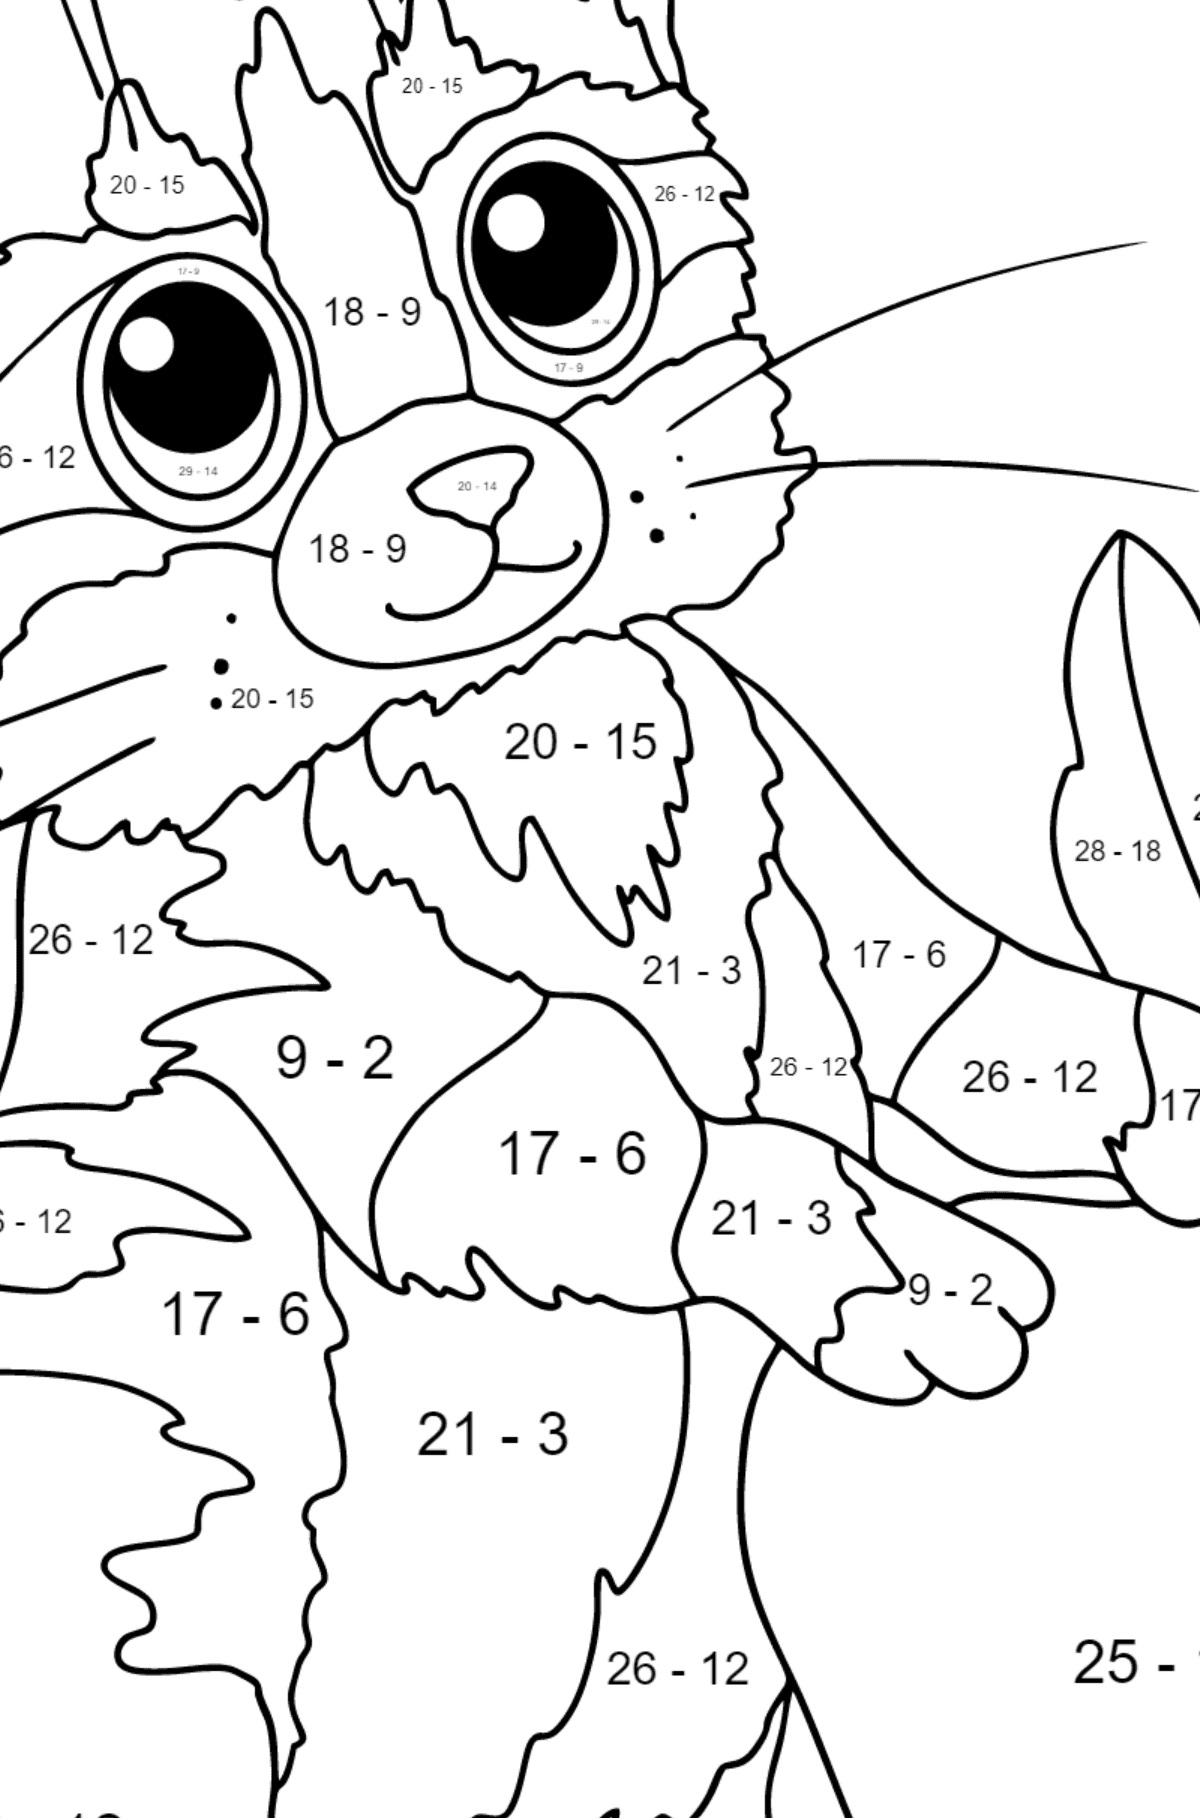 Coloring Page - A Cat and a Ripe Apple - Math Coloring - Subtraction for Children